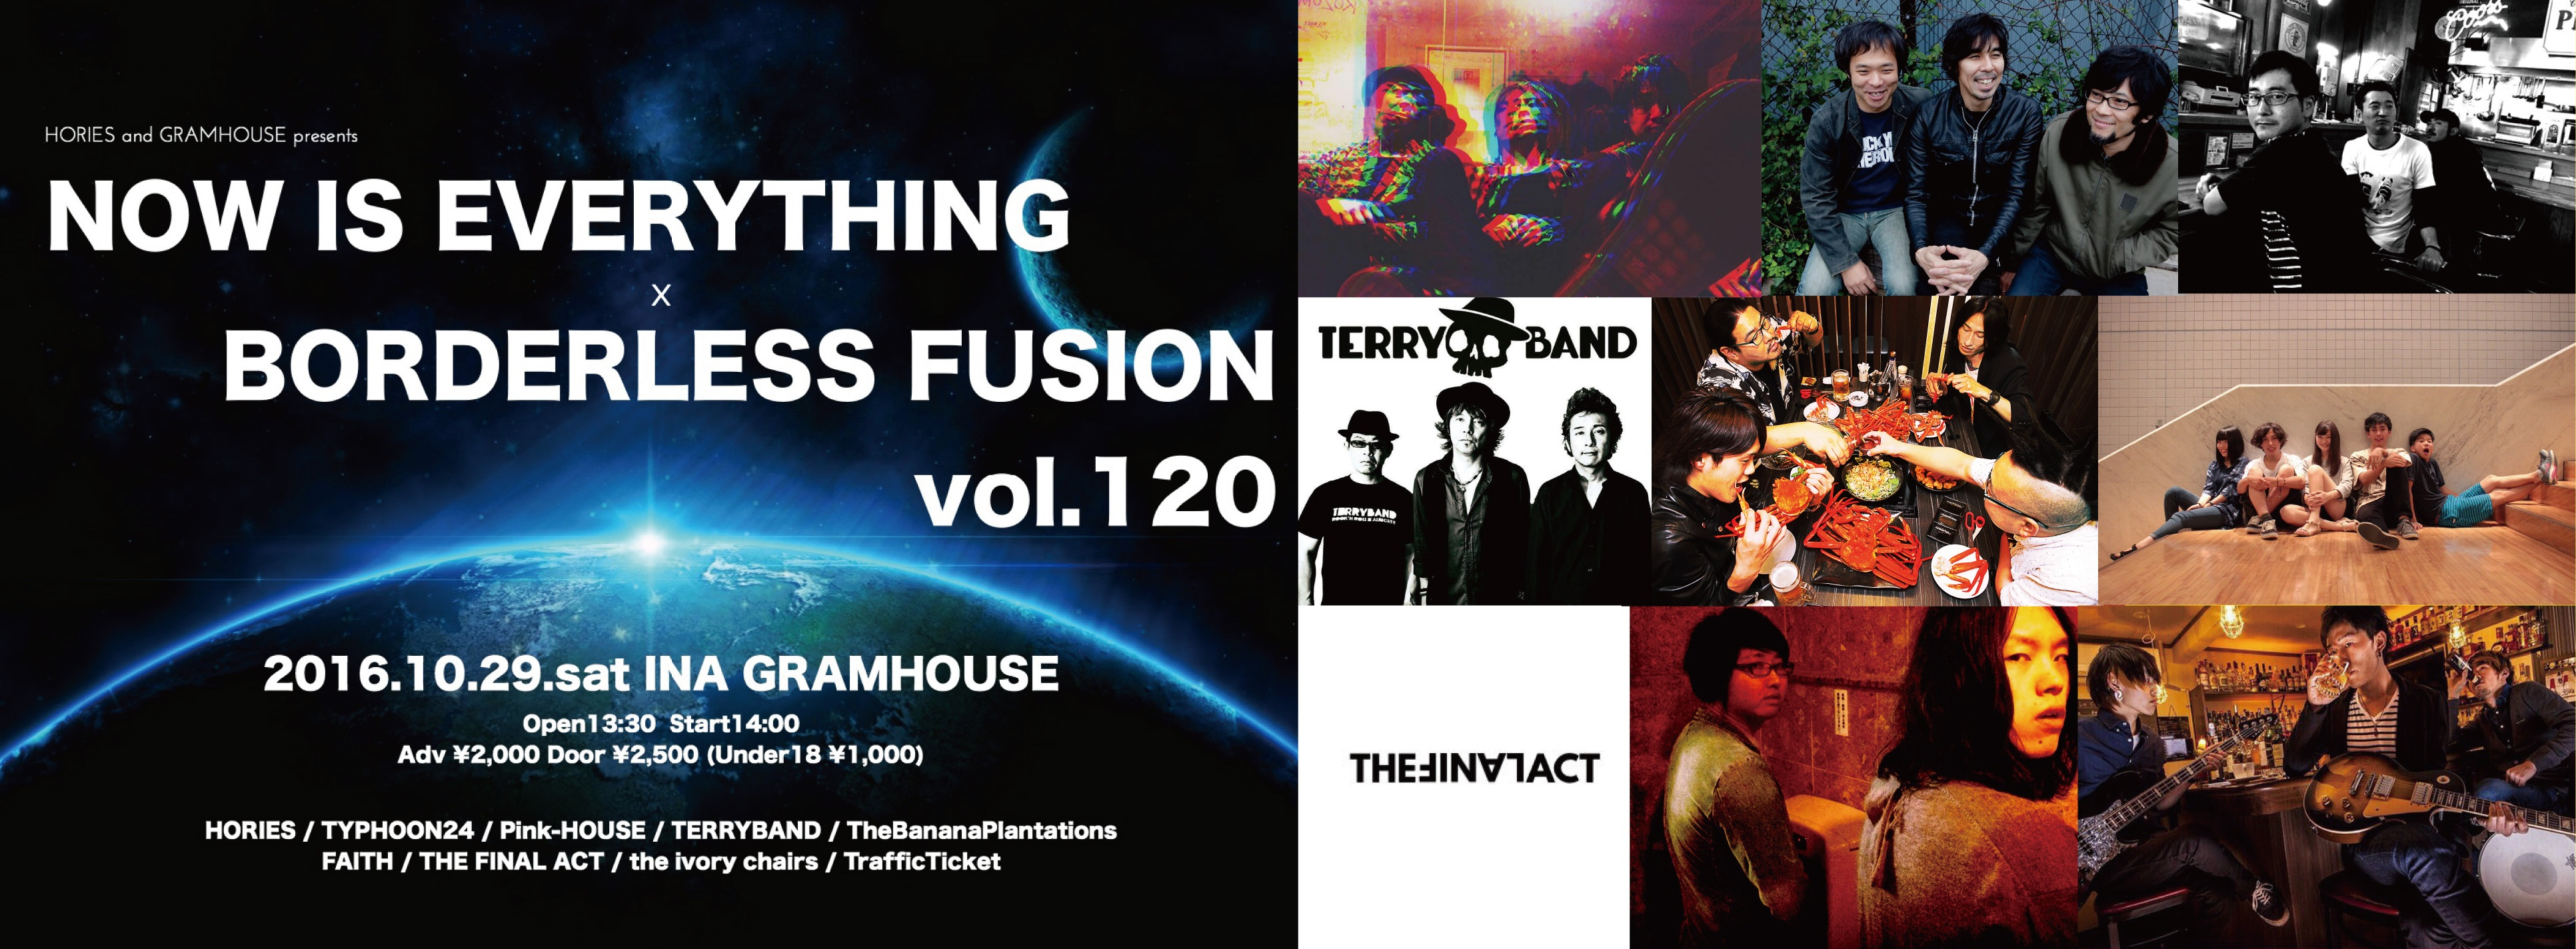 NOW IS EVERYTHING×BORDERLESS FUSION vol.120